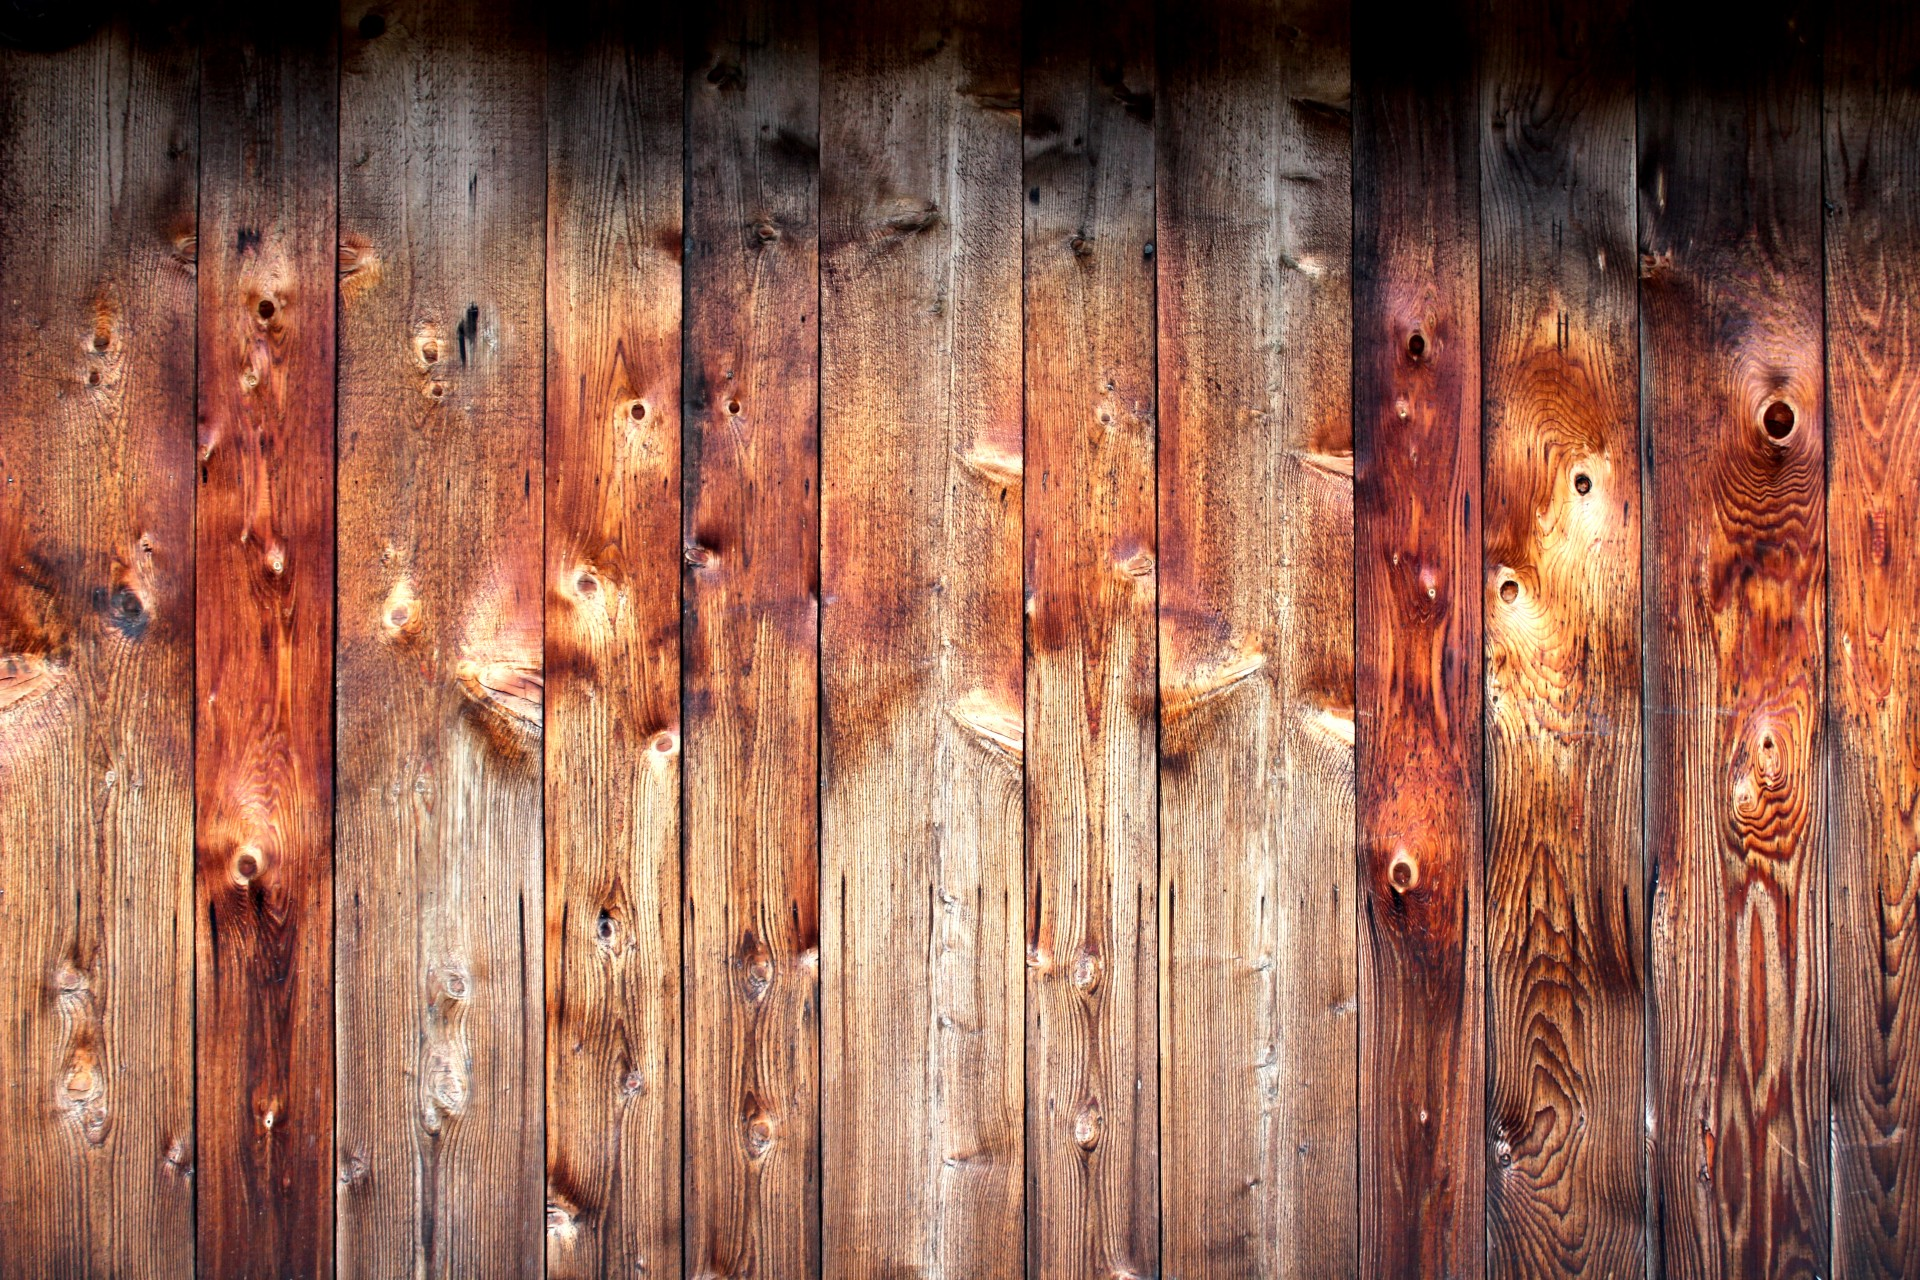 wwwdreamstimecomstock photos barn board textured background old 1920x1280